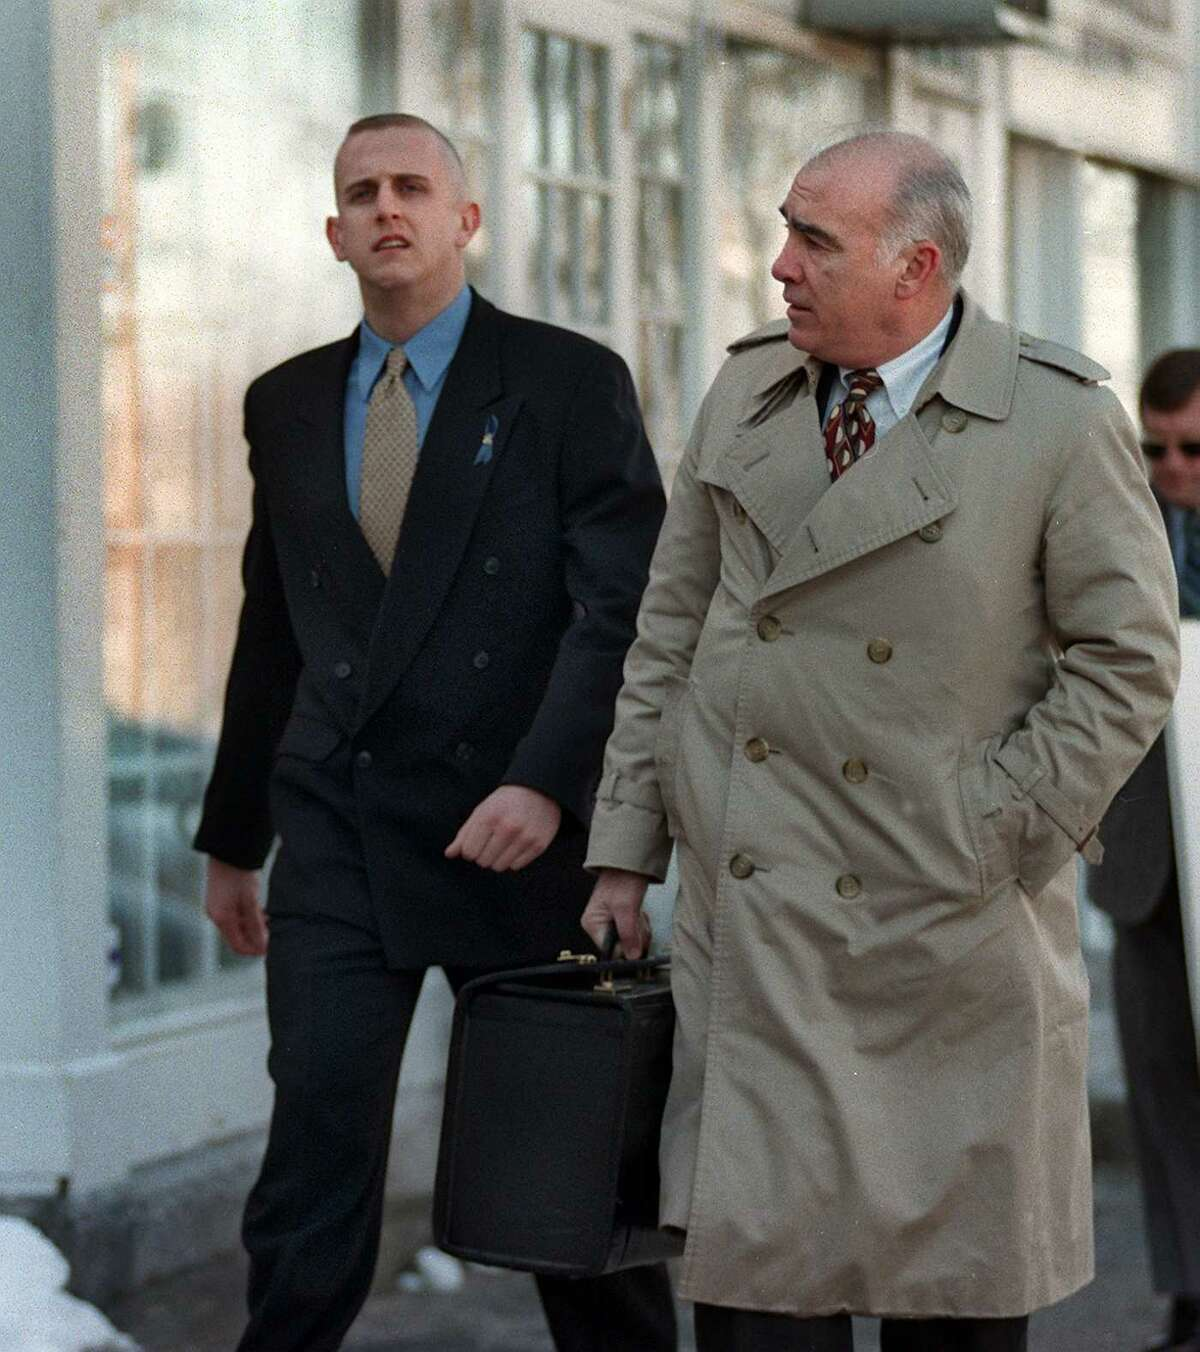 New Milford Police Officer Scott Smith arrives at the Litchfield Superior Court with his attorney, John Kelly for a probable cause hearing in the death of Franklyn Reid.